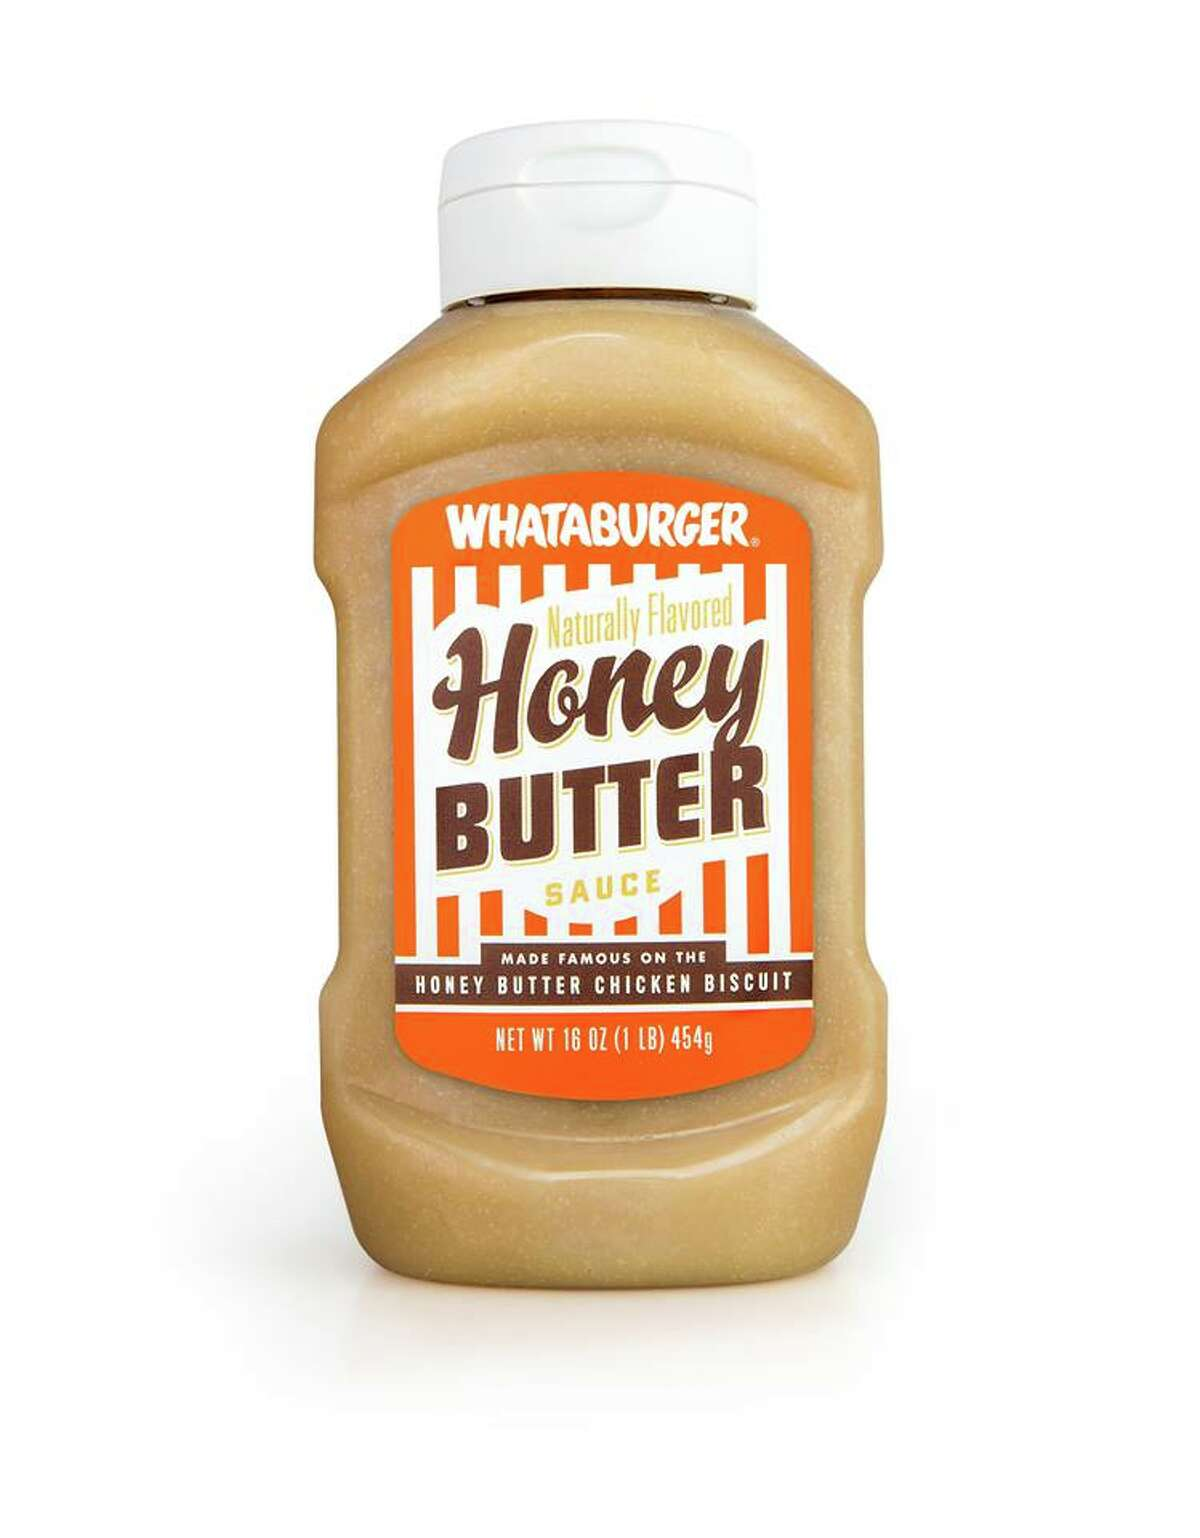 Whataburger Honey Butter Available in H-E-B stores statewide.